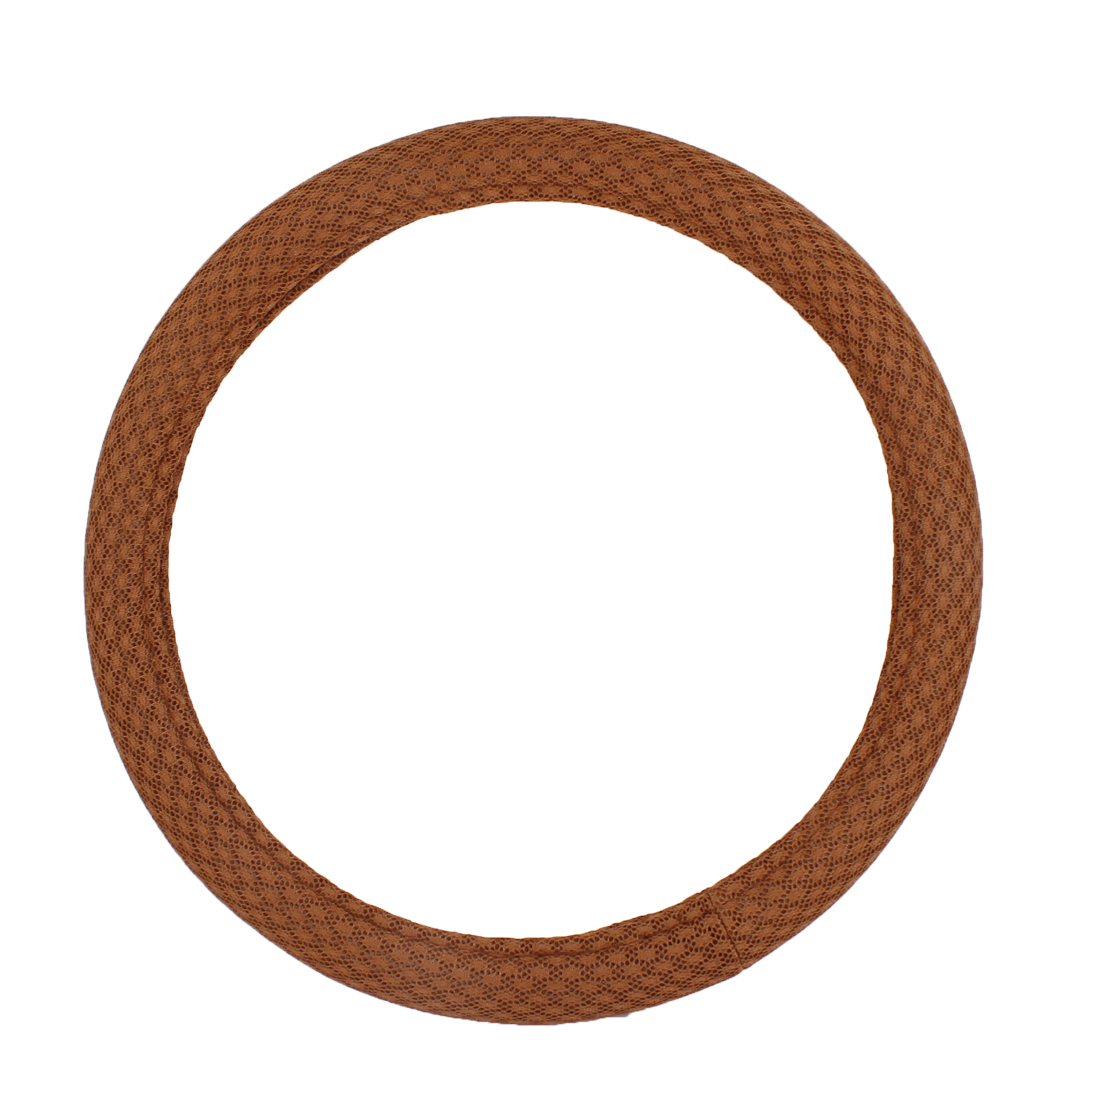 Auto Chocolate Color Mesh Style Nylon Steering Wheel Cover Protector 38cm Dia